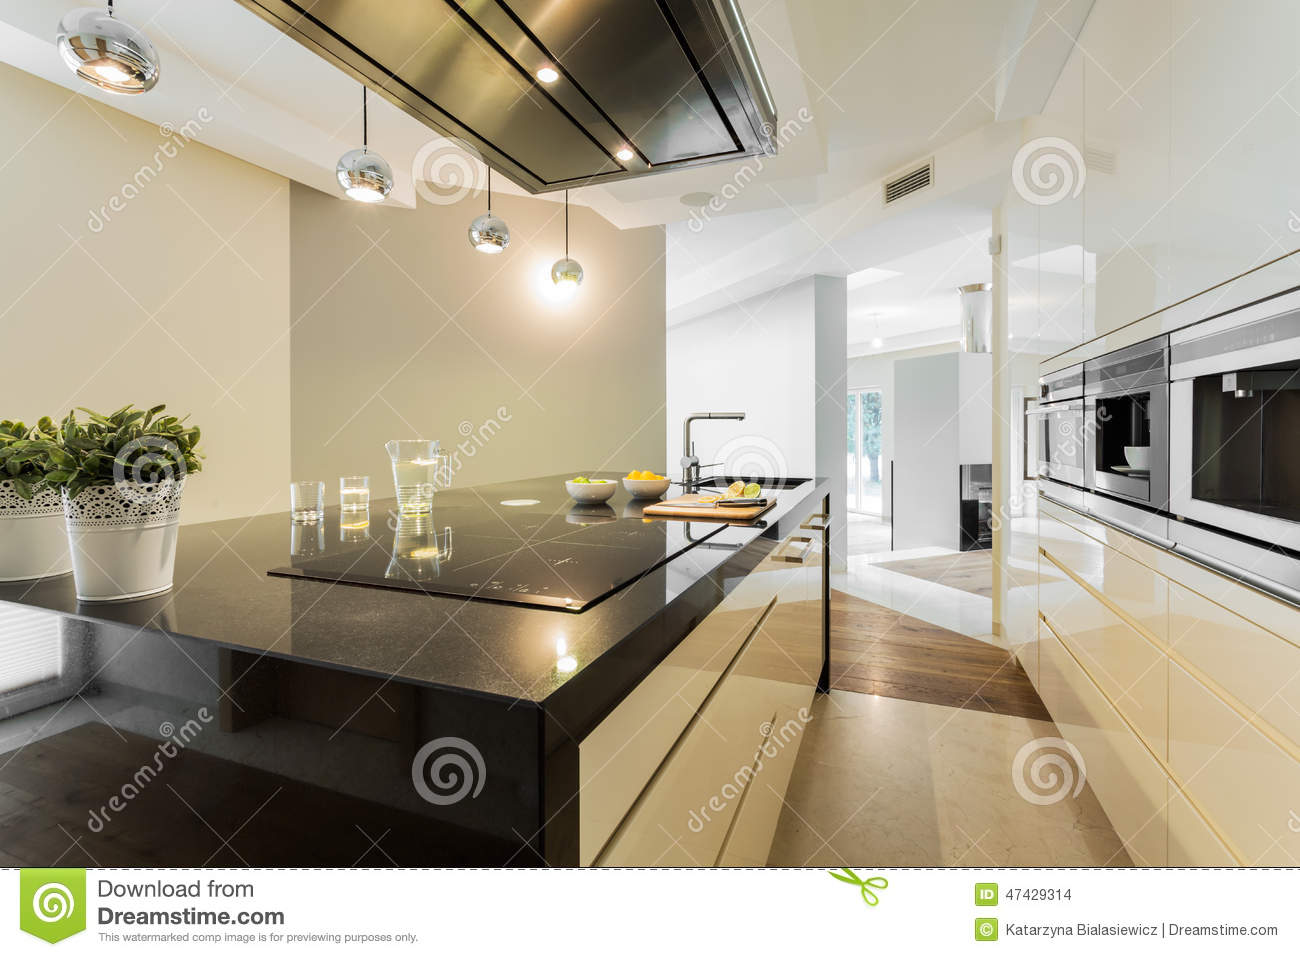 Countertop in designer kitchen stock photo image 47429314 for Kitchen countertop planner